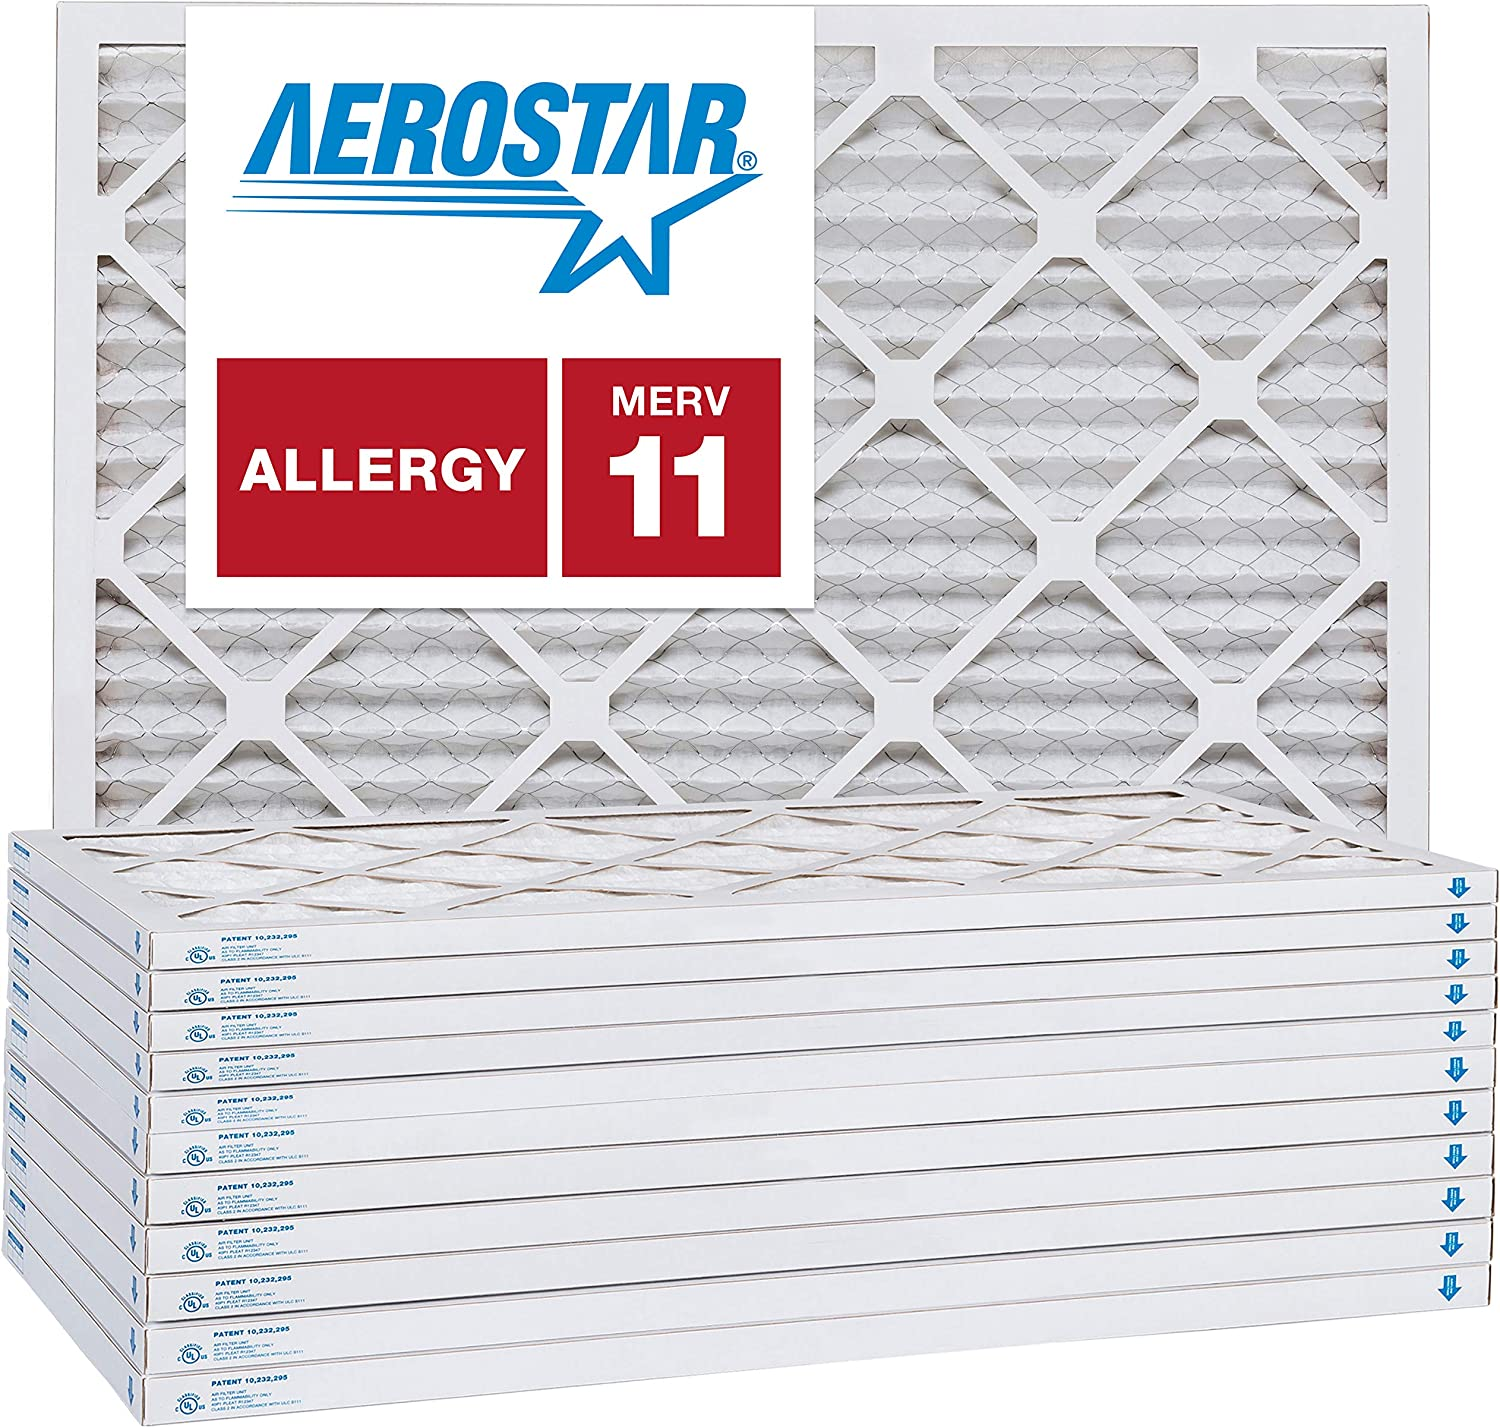 Box of 12 MERV 11 16 3//8x21 1//2x1 Carrier Replacement Filter by Aerostar